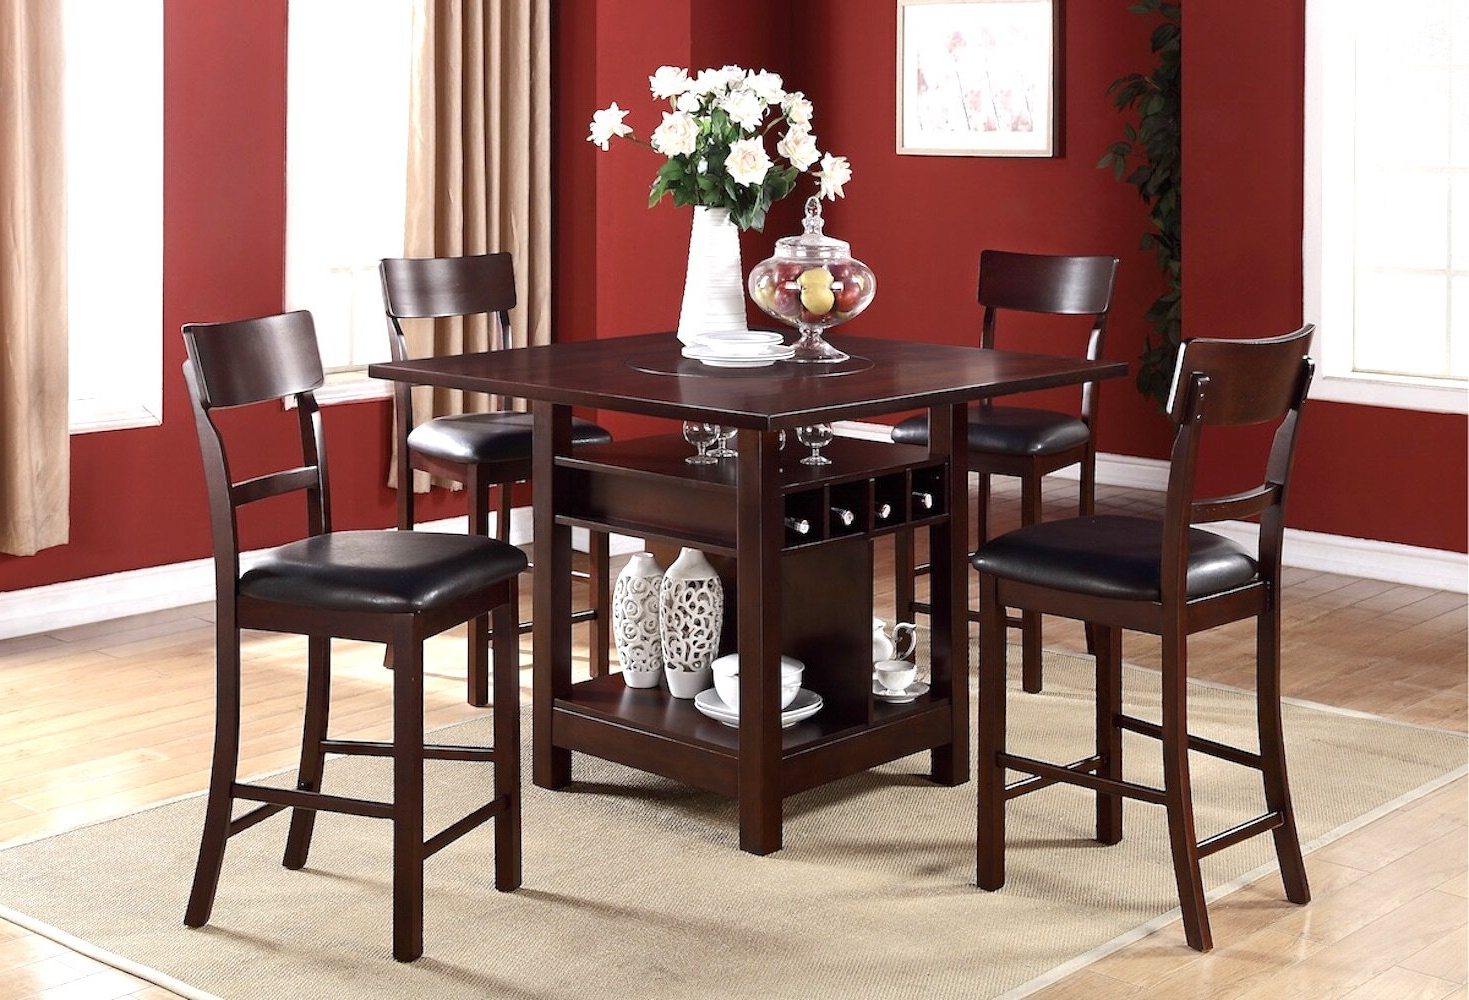 Fashionable Biggs 5 Piece Counter Height Solid Wood Dining Sets (Set Of 5) Intended For Stevenson 5 Piece Pub Table Set (Gallery 5 of 20)